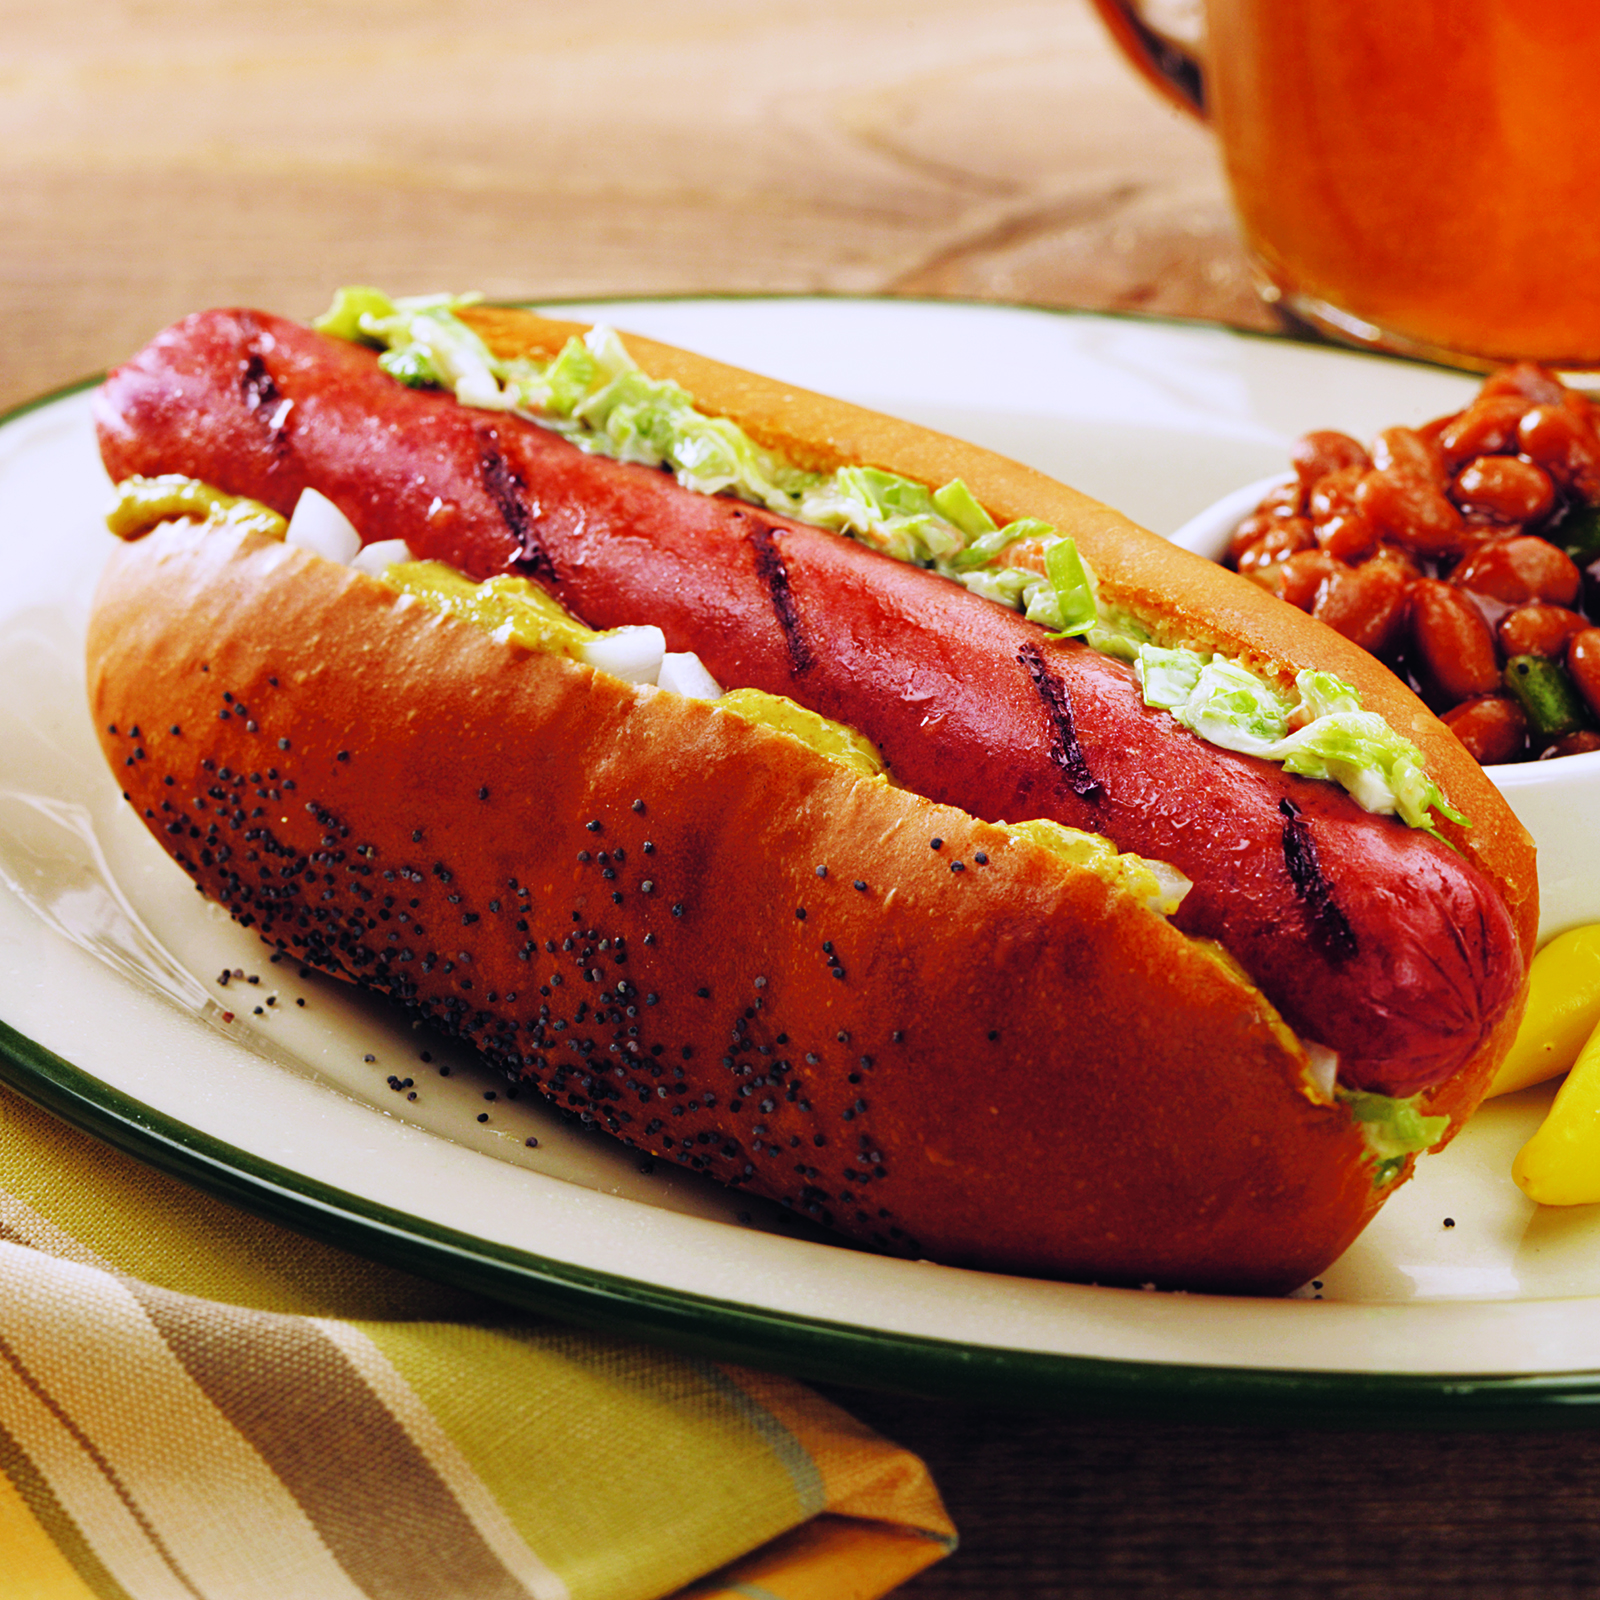 5 Hot Dog Do's and Don'ts